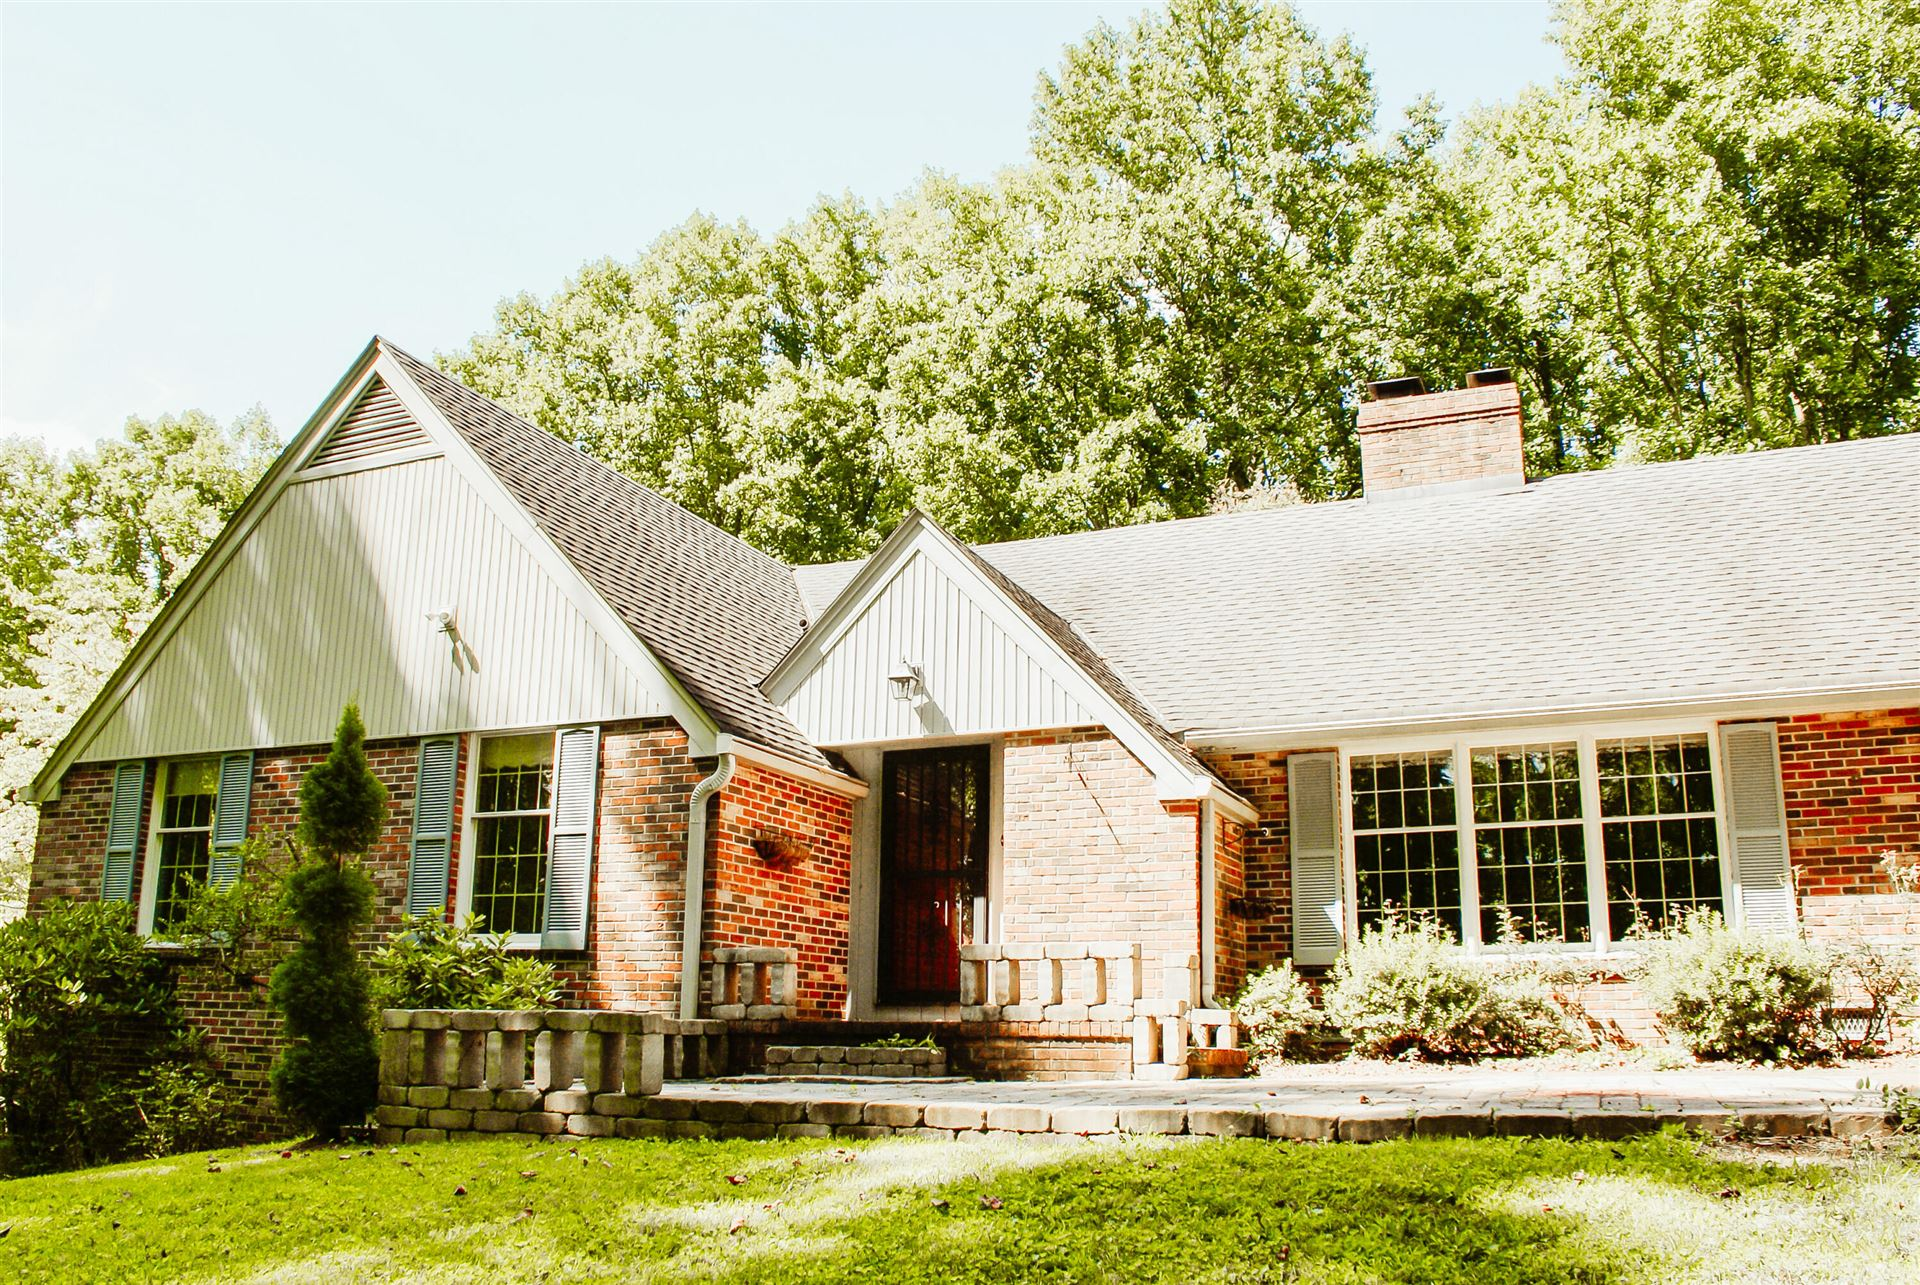 Photo of 239 Barger Hollow Road, Blountville, TN 37617 (MLS # 9927892)